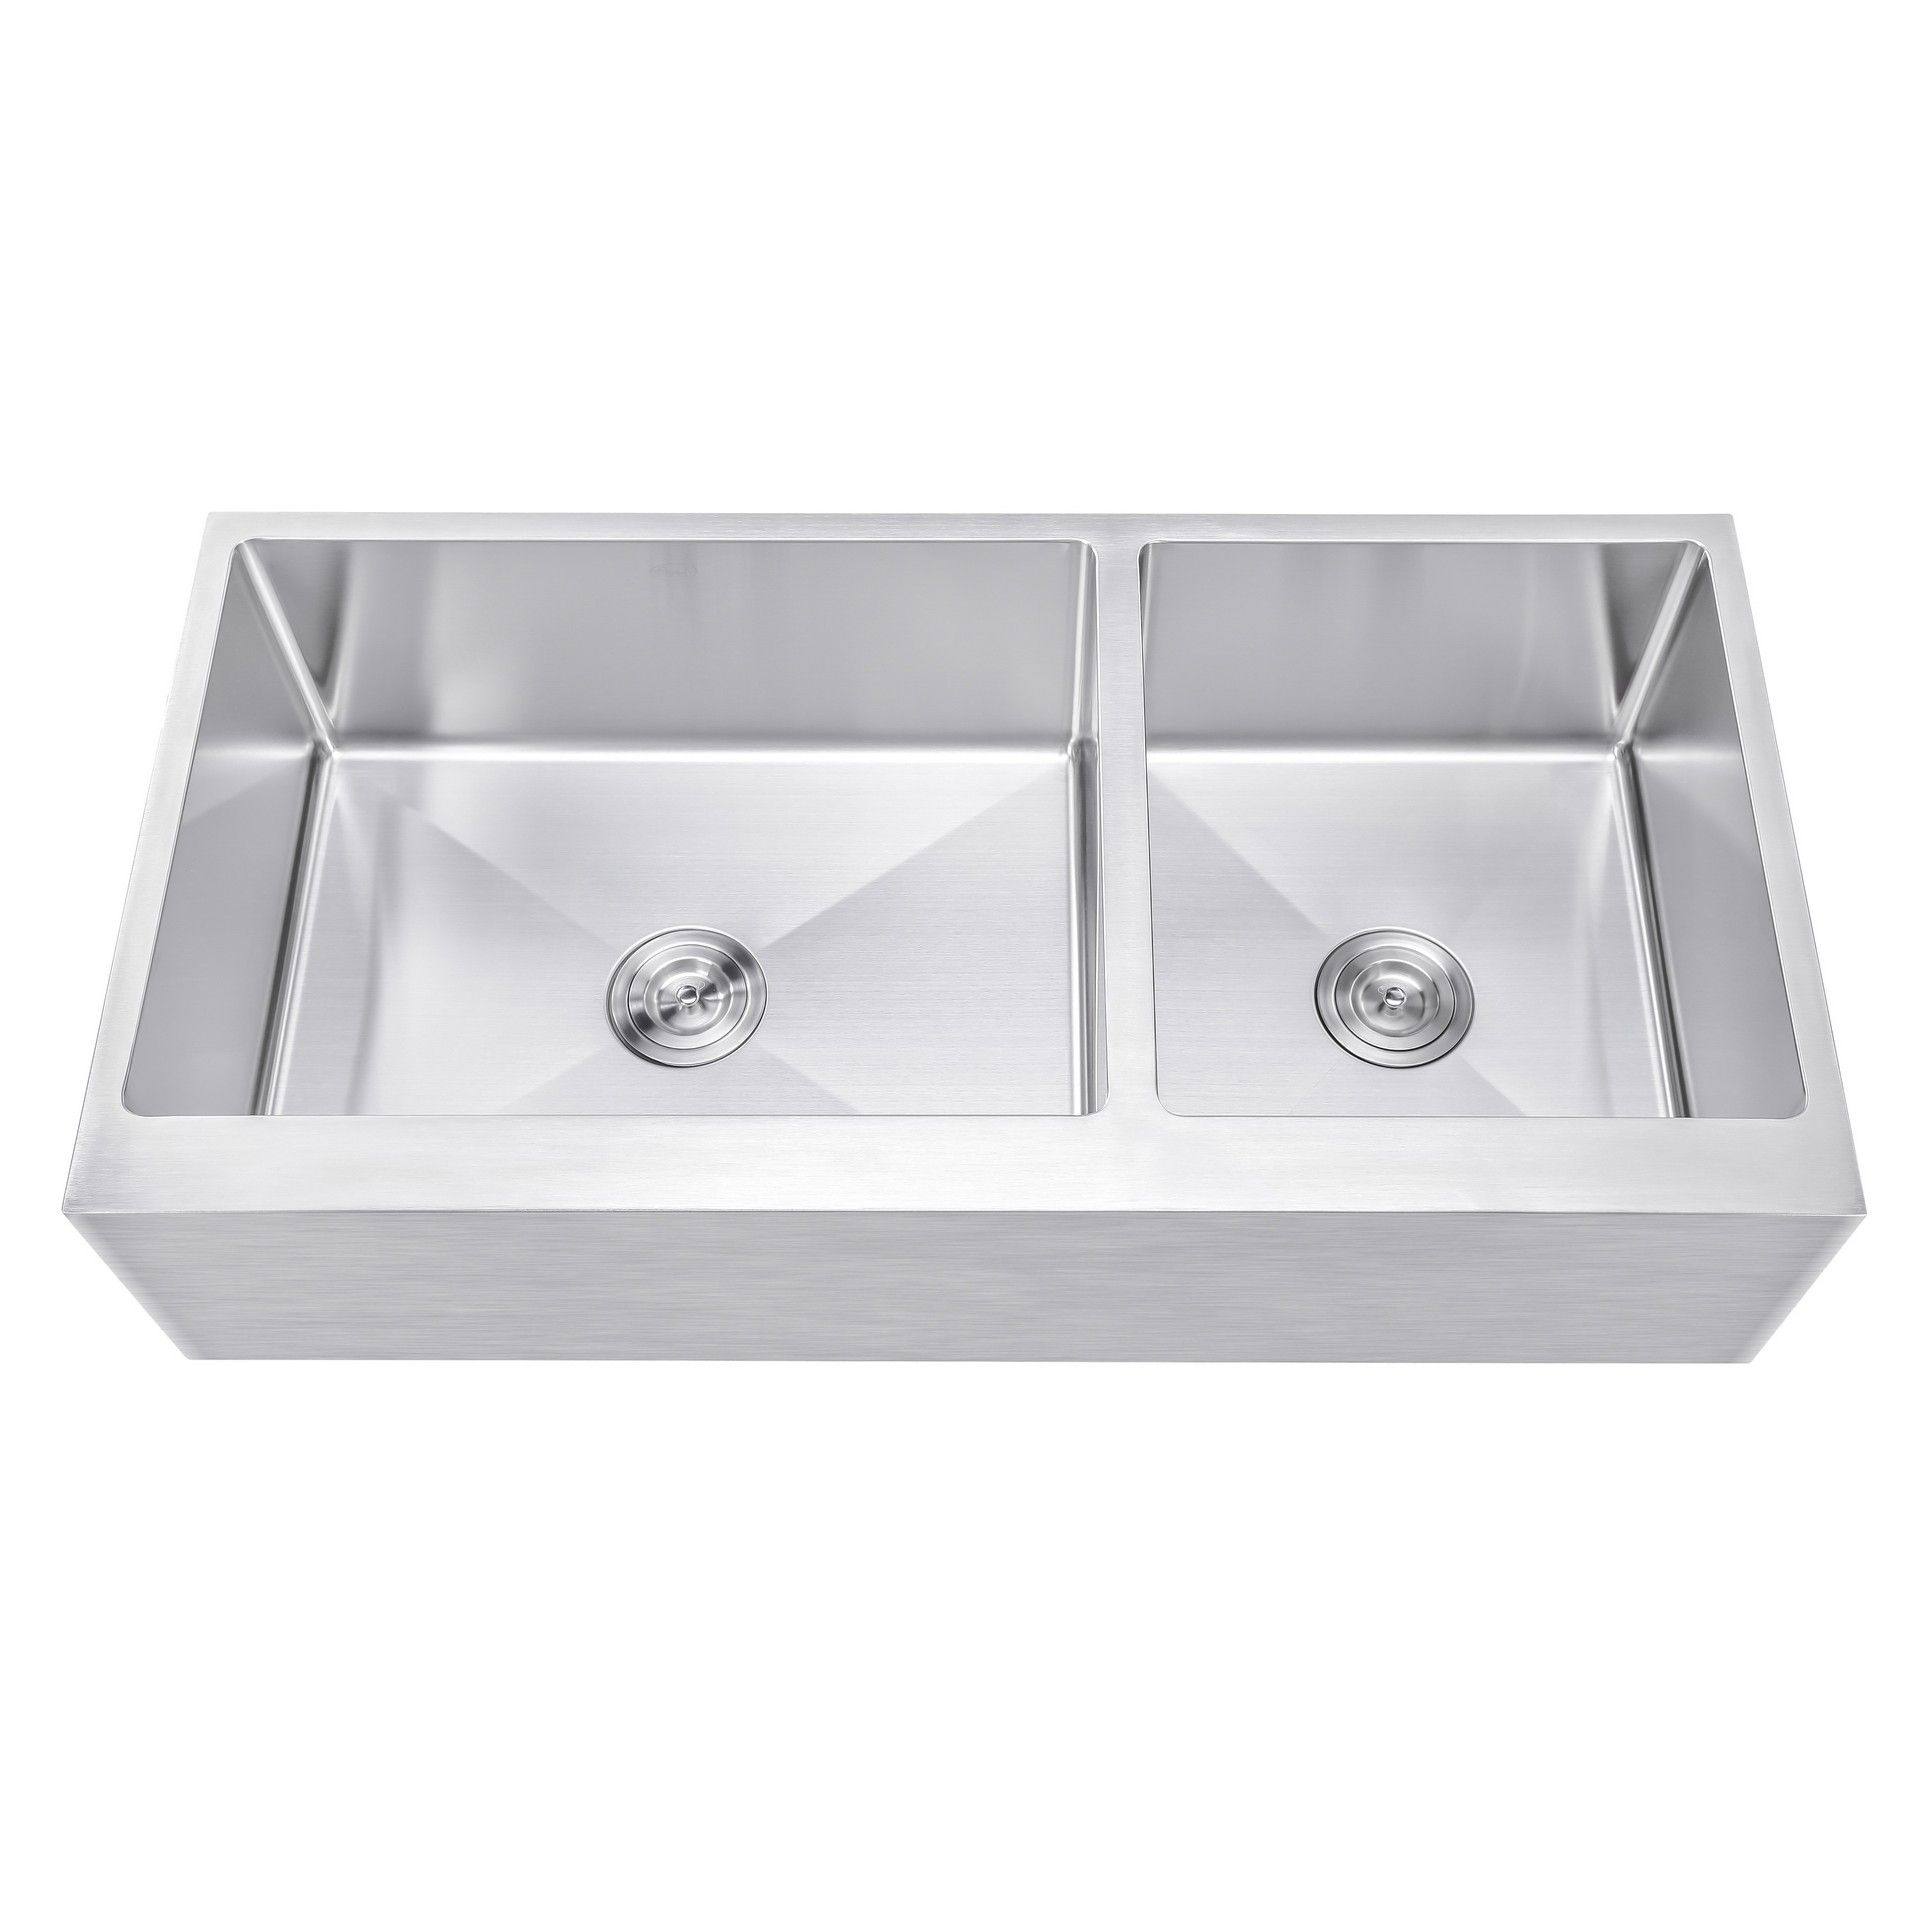 Ariel 42 Inch 60 40 Offset Double Bowl Stainless Steel Farmhouse